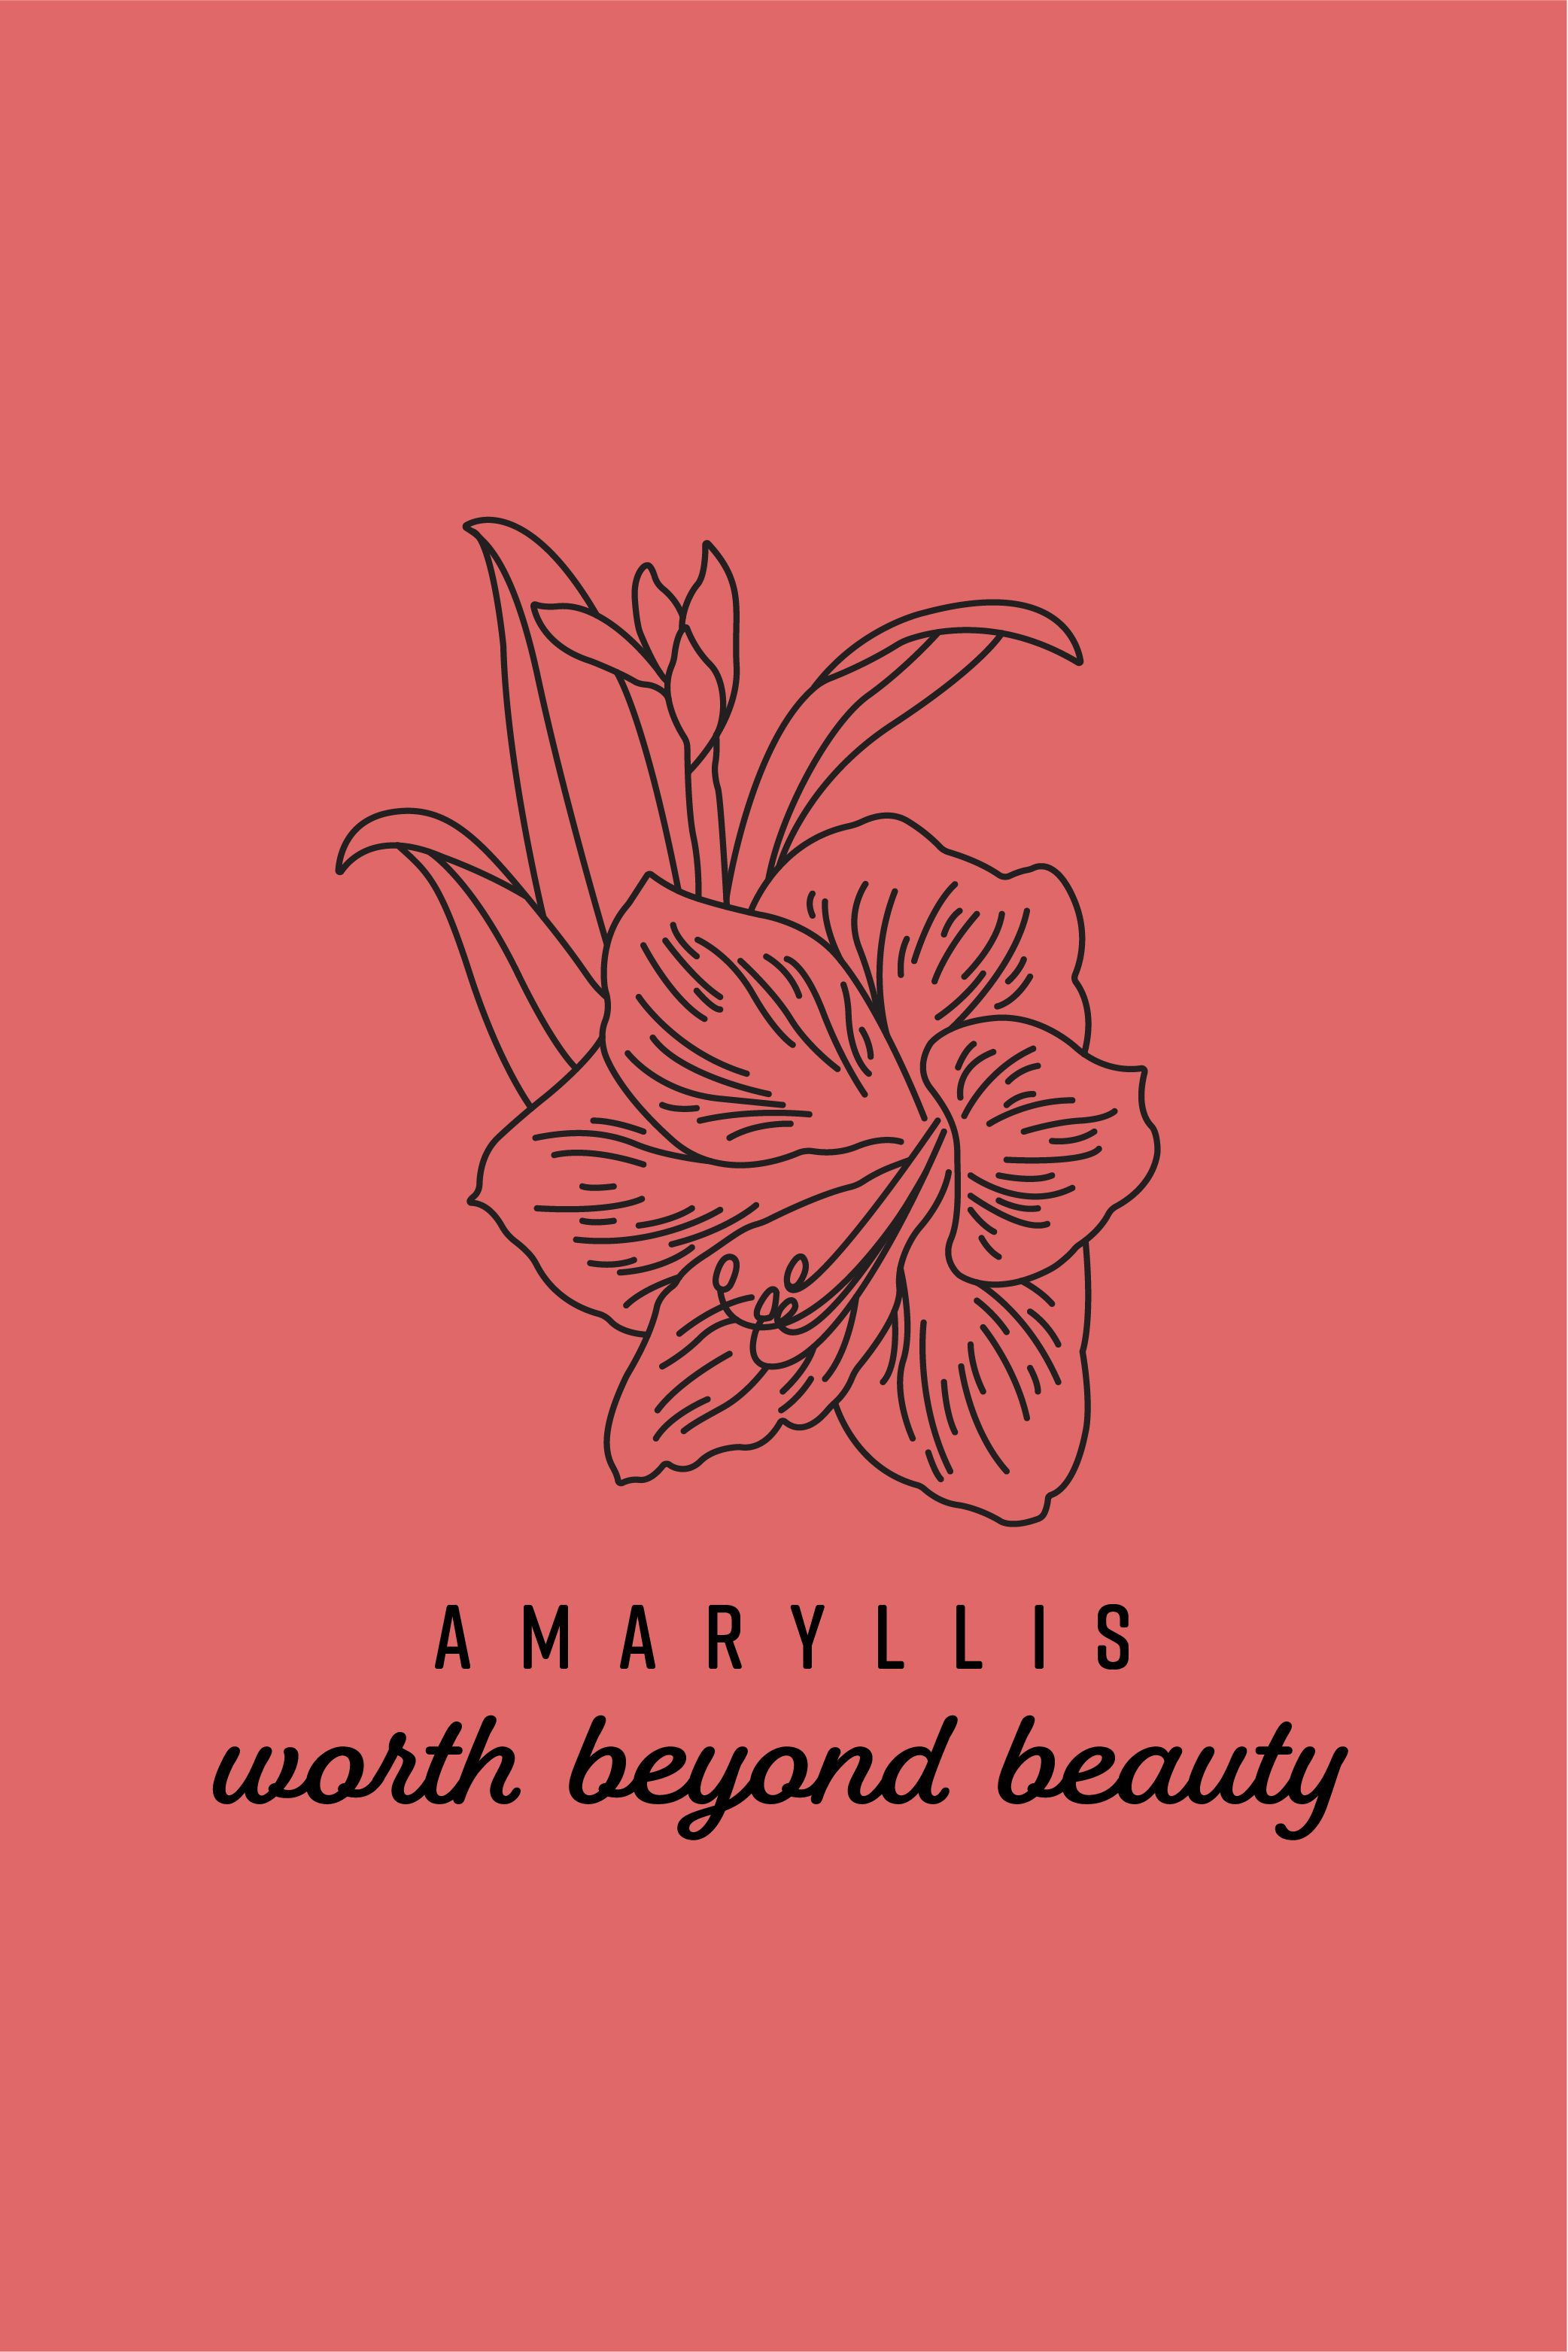 Amaryllis Language Of Flowers In 2020 Beyond Beauty Language Of Flowers Flower Dictionary